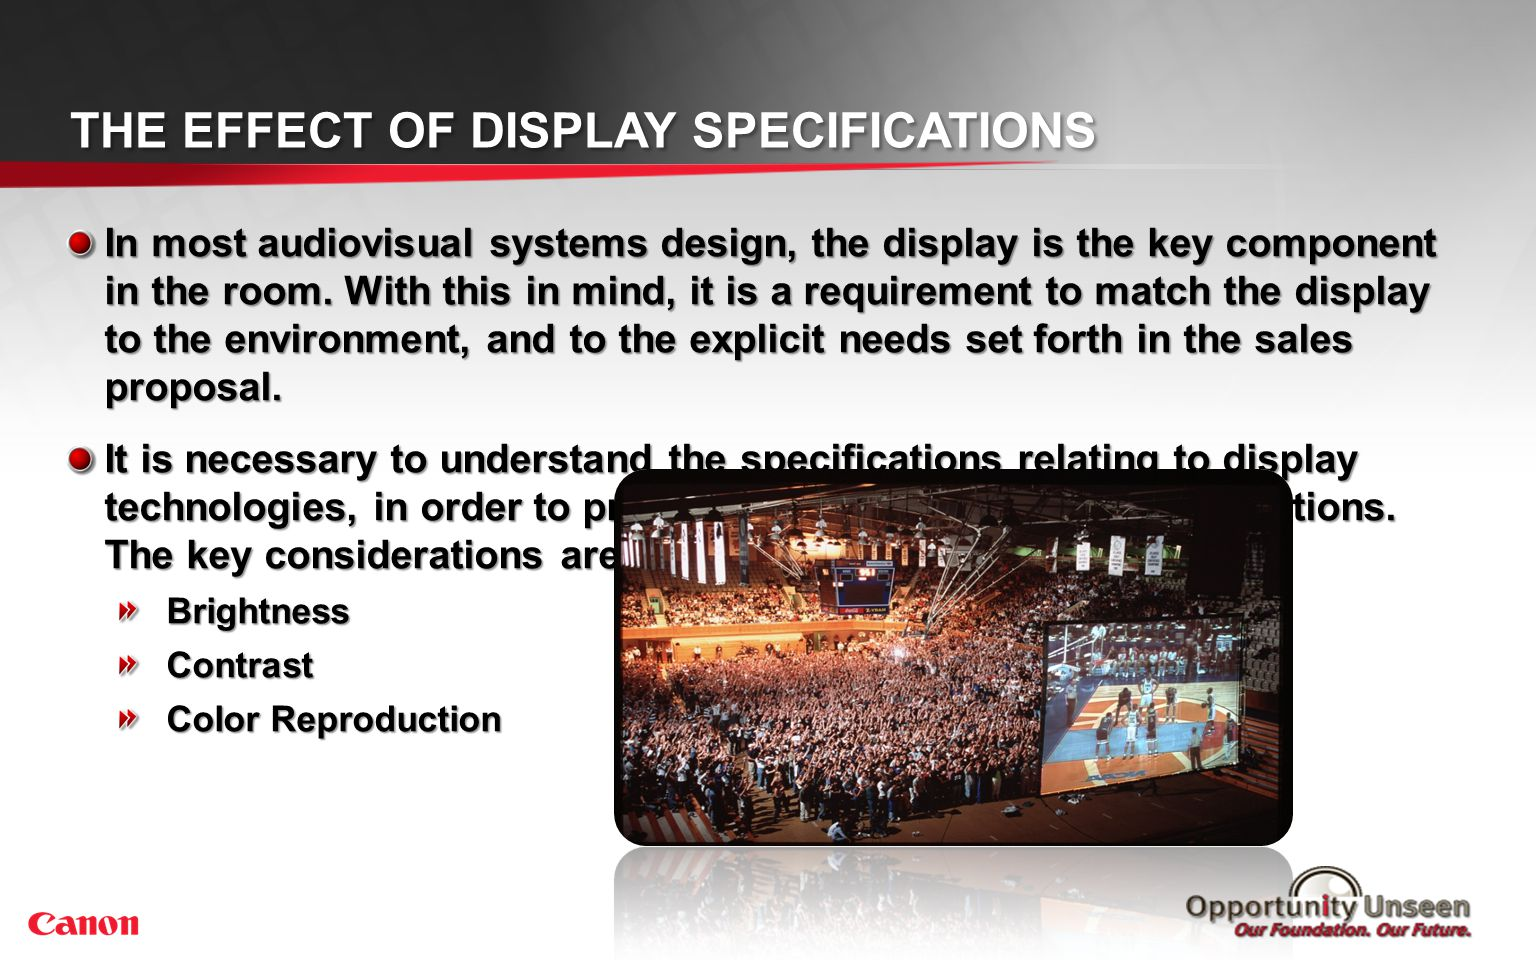 In most audiovisual systems design, the display is the key component in the room. With this in mind, it is a requirement to match the display to the e